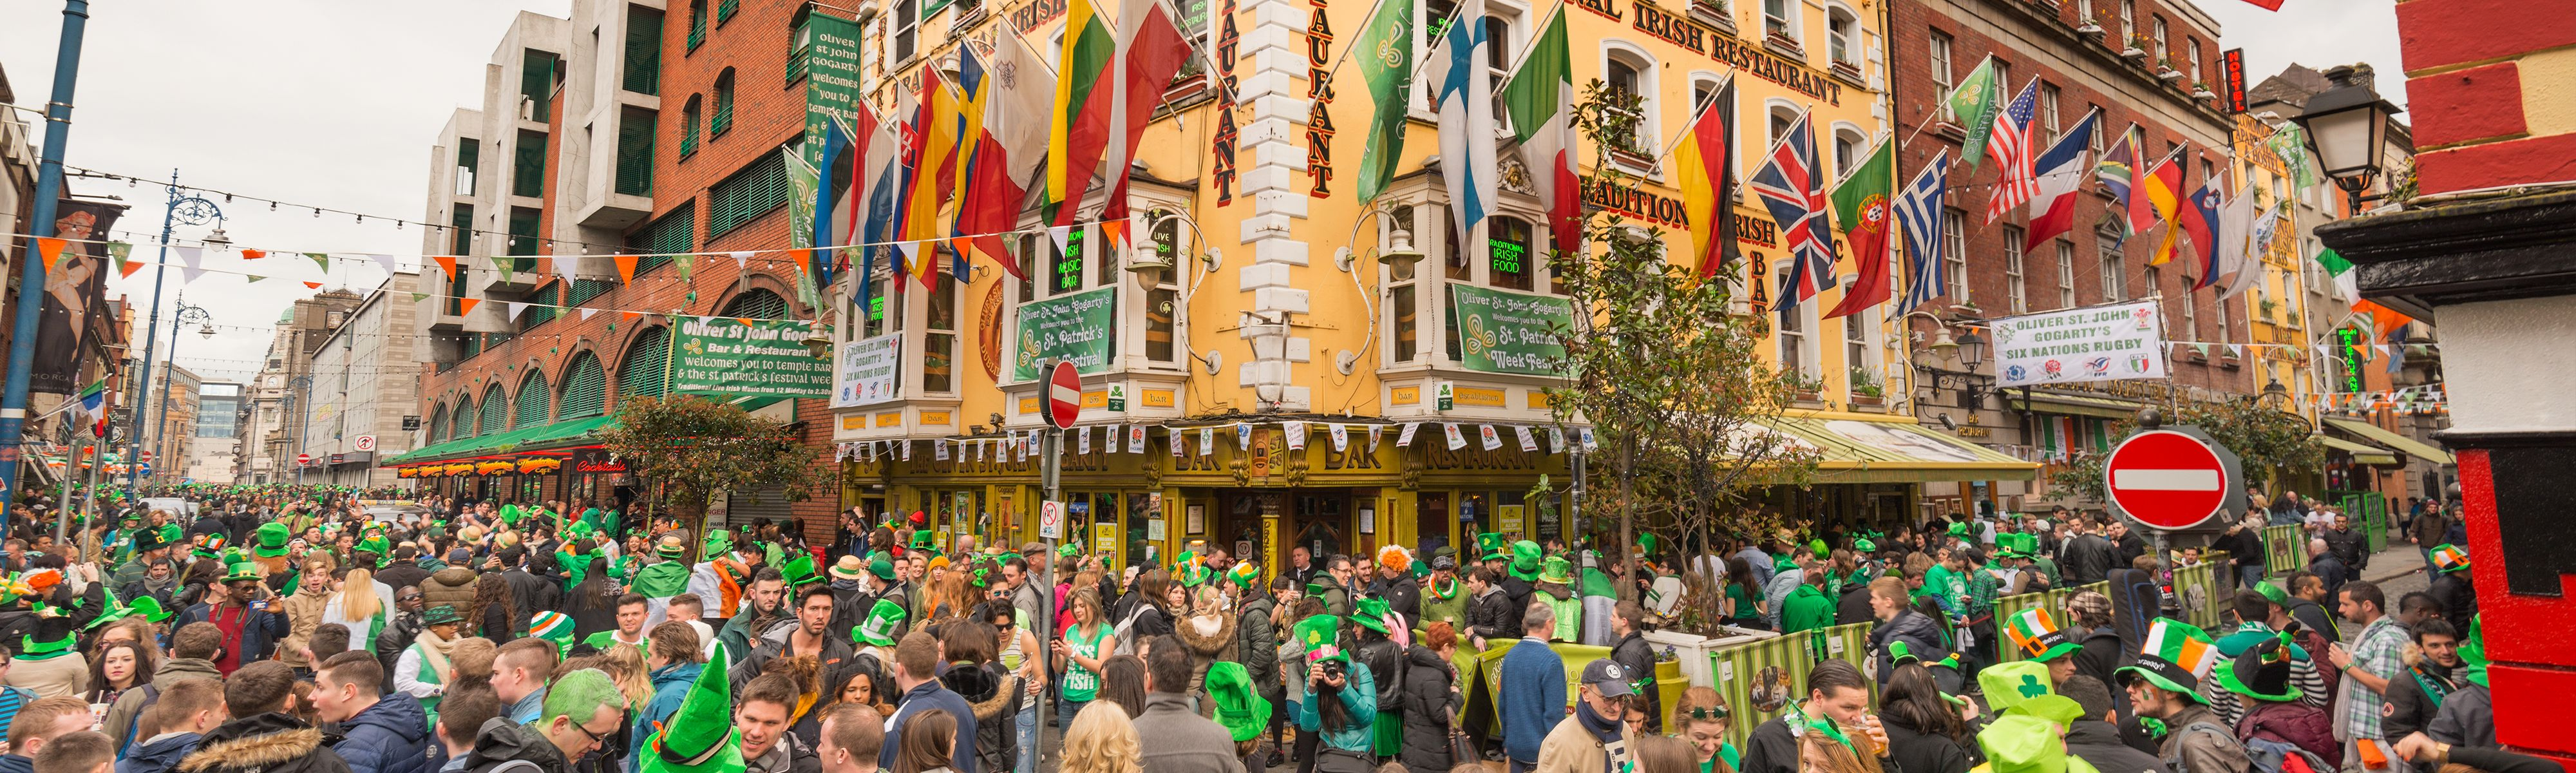 Phoenix St Patricks Day Events 2020.A Week In Ireland St Patrick S Day Ef Go Ahead Tours